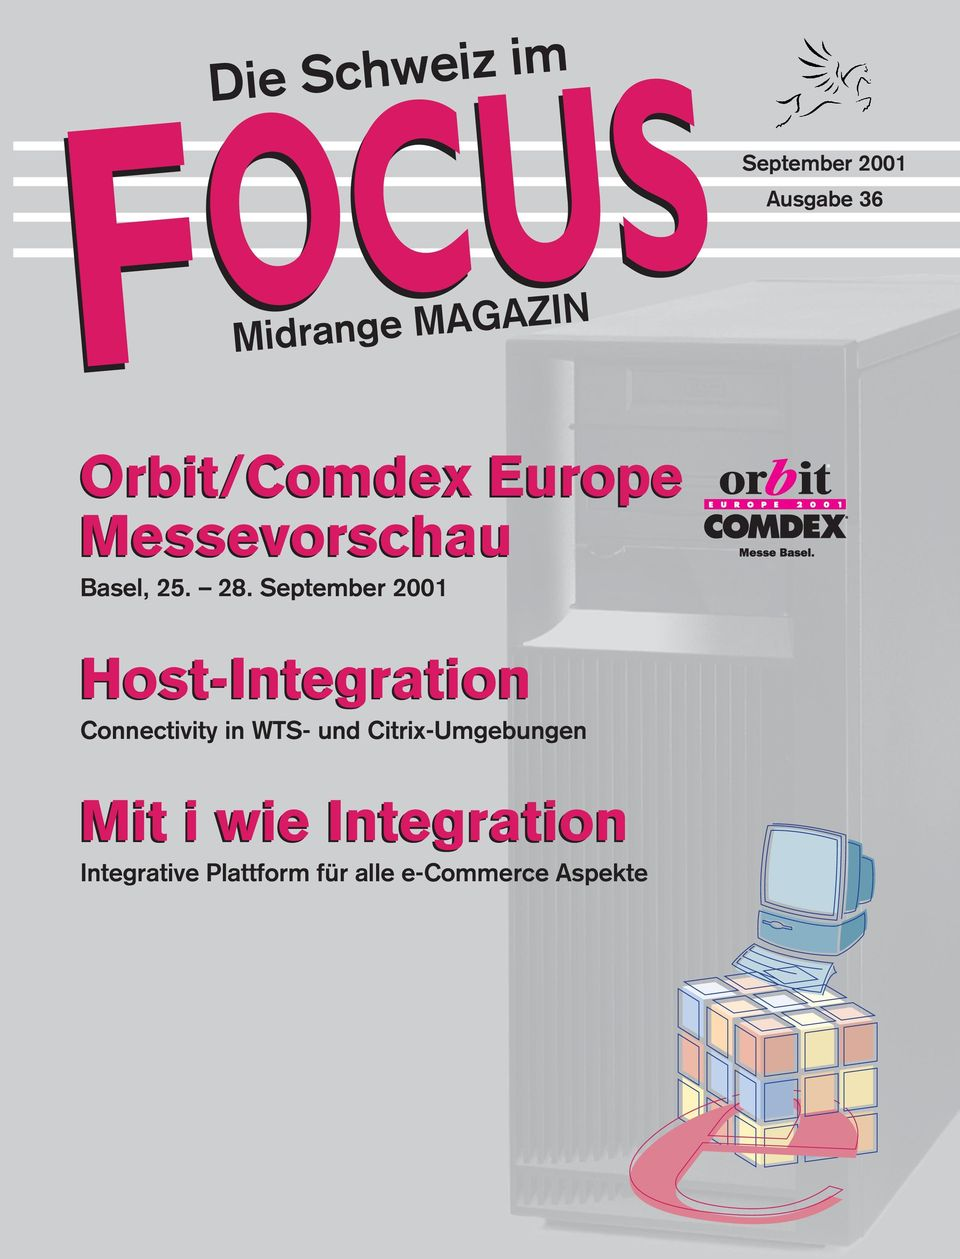 September 2001 Host-Integration Connectivity in WTS- und